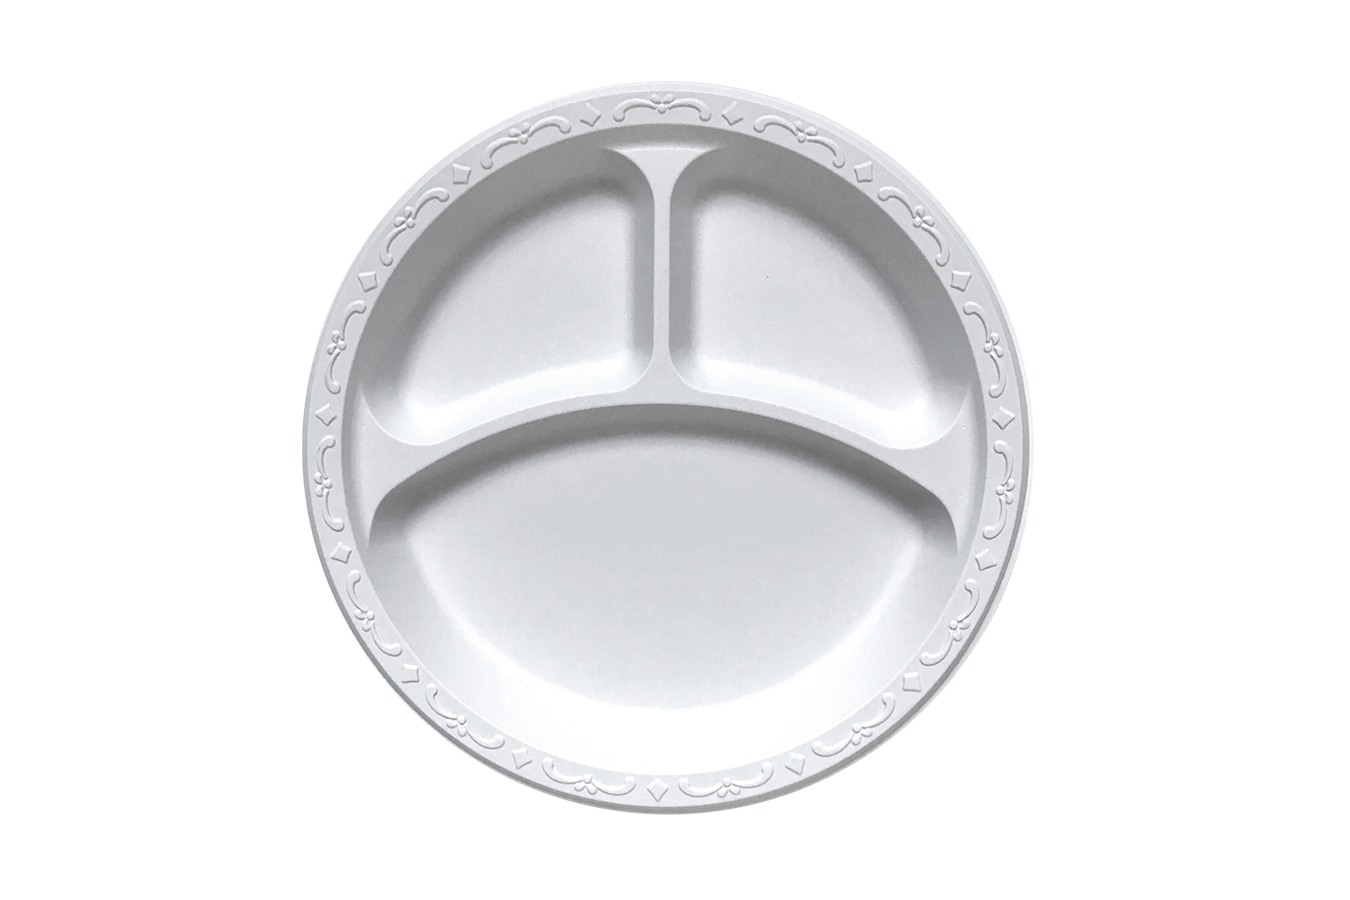 Ivory Polypropylene PP Plastic round 9 inches pebble box plate with 3 compartments